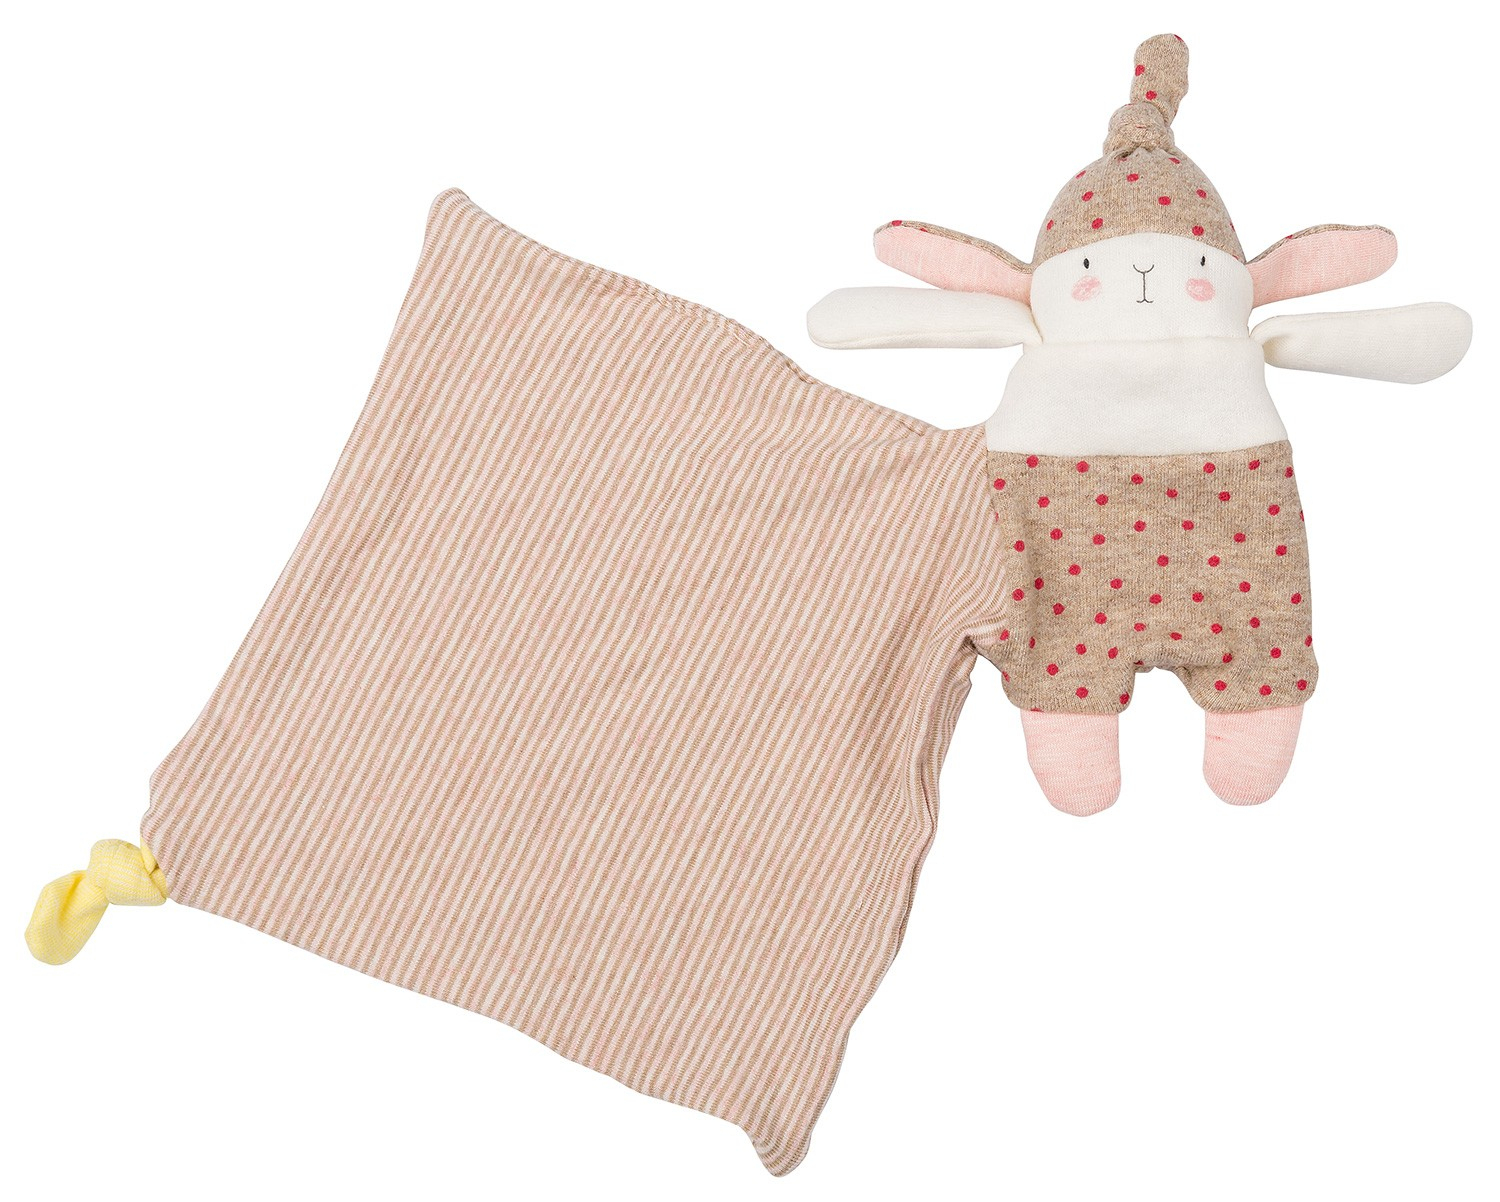 Blankie Lulu The Rabbit Les Petits Dodos Moulin Roty destiné Lapin Lulu